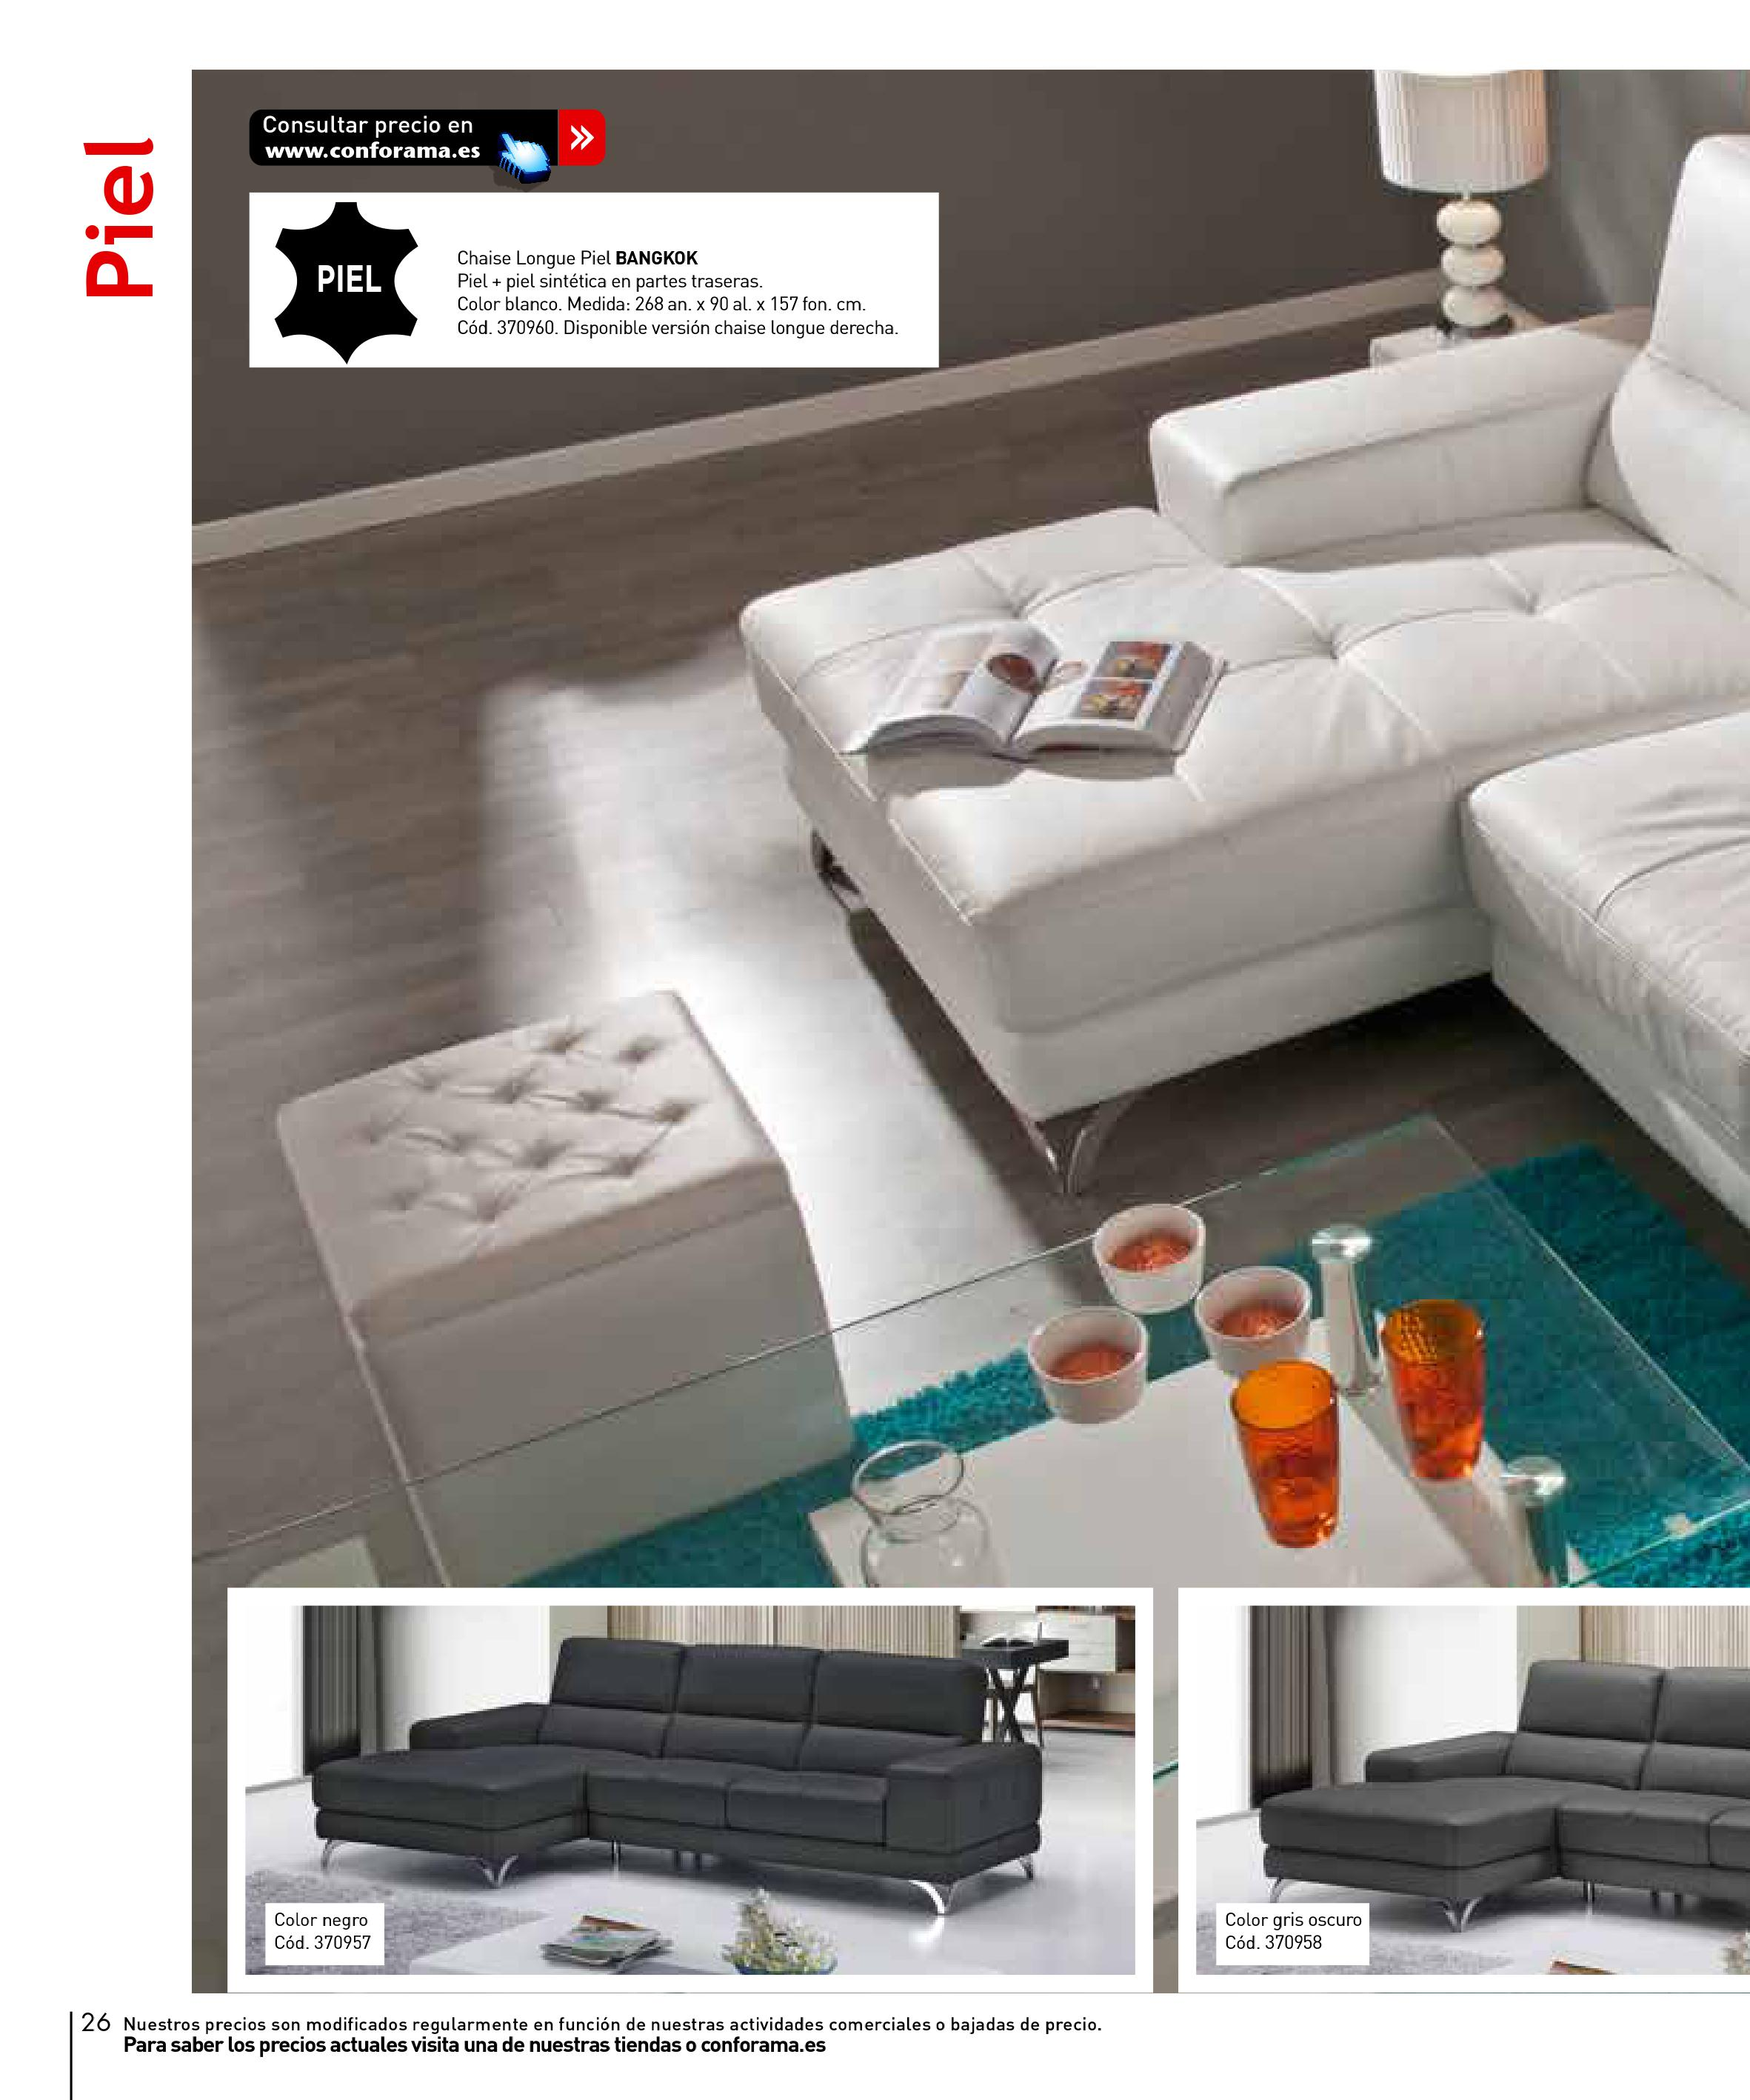 Sofas conforama 201526 for Sofas conforama catalogo